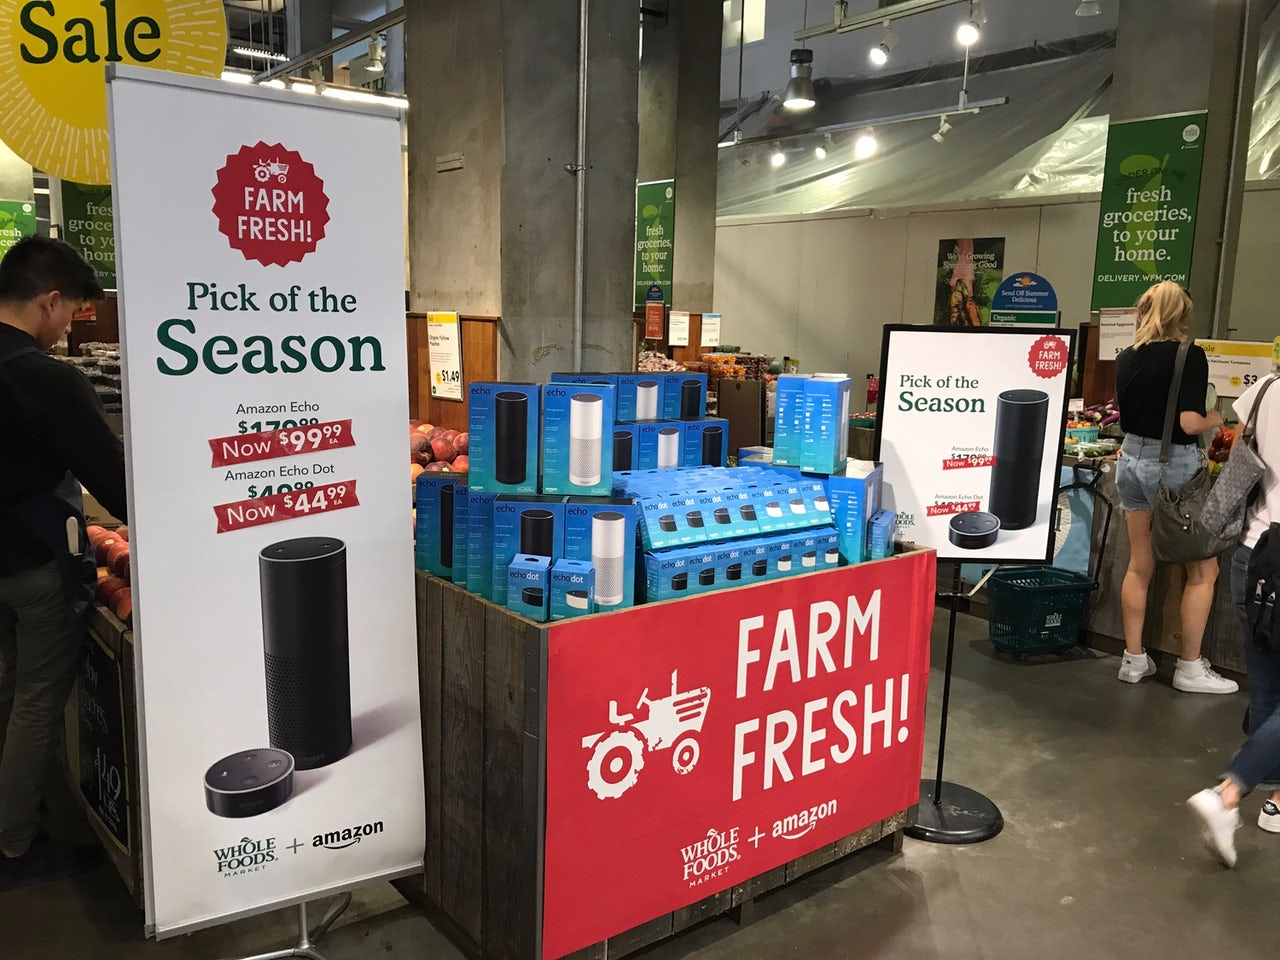 You can now pick up a handy home surveillance tool/speaker at your local Whole Foods.